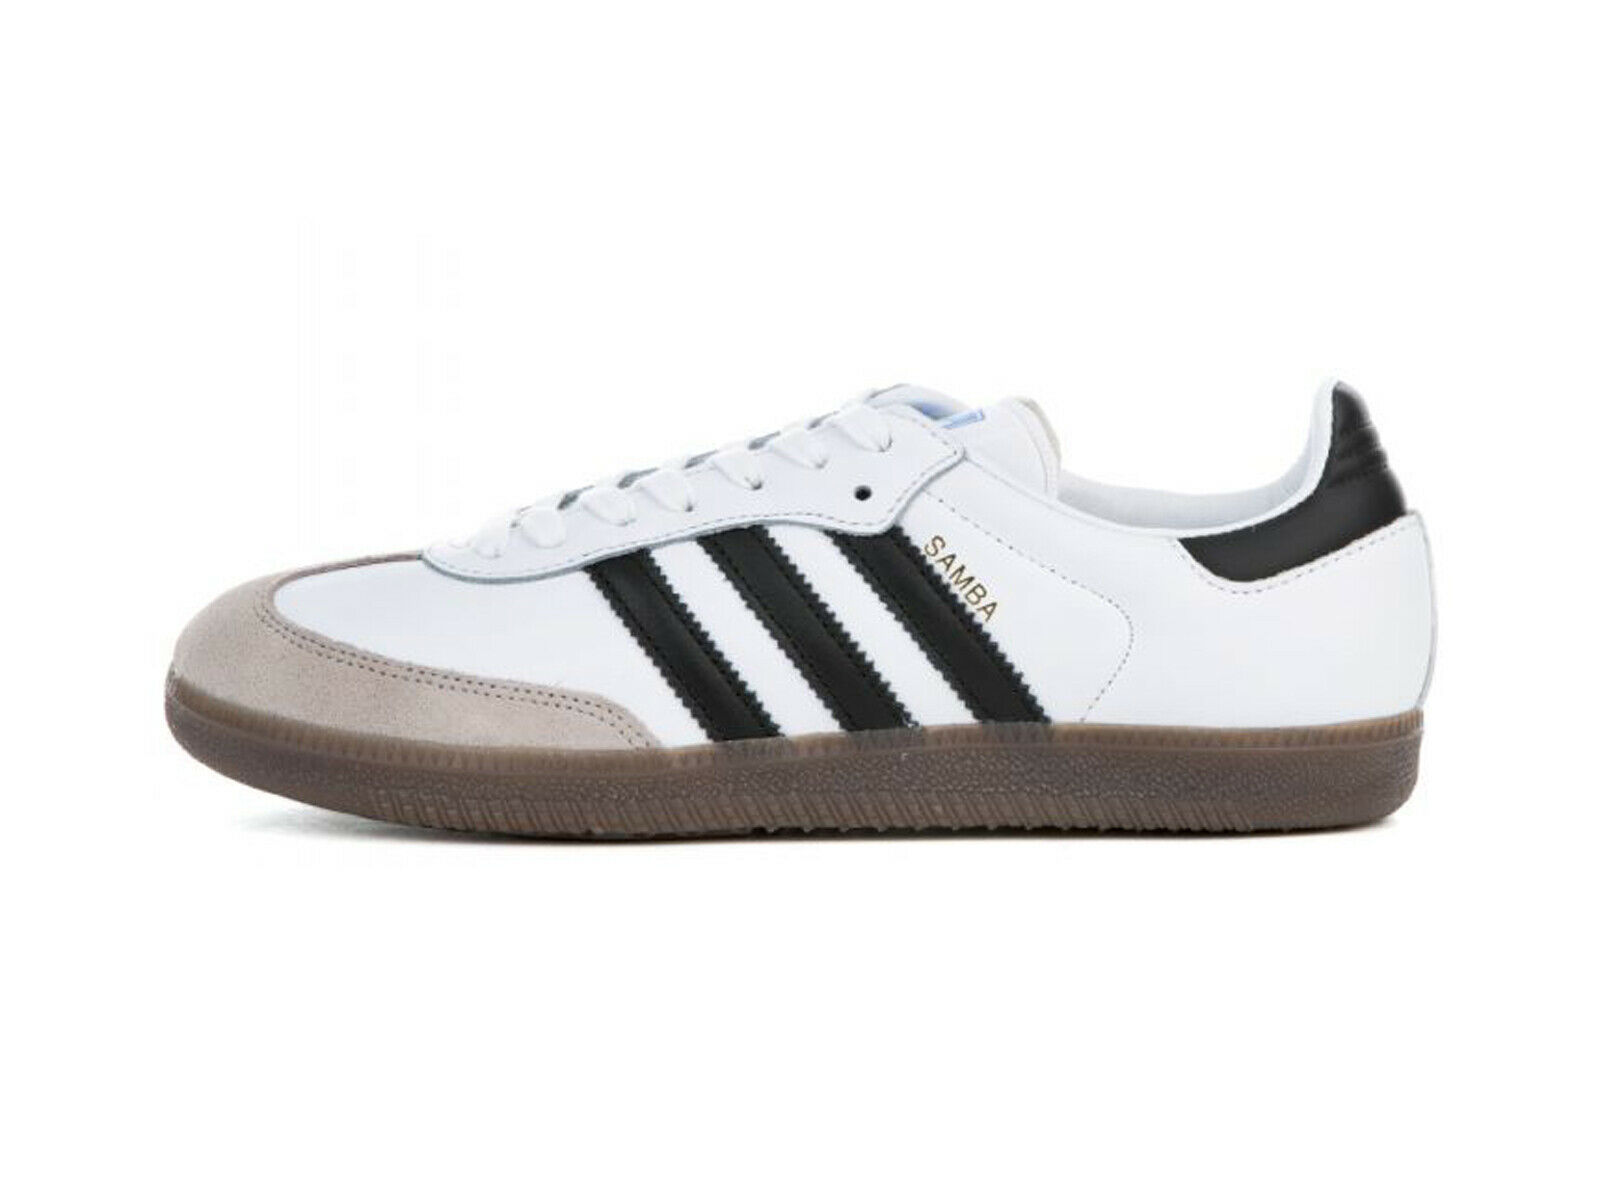 360f47ecbb215 Adidas Originals Men s SAMBA OG shoes Cloud White Core Black Gum BB2588 b